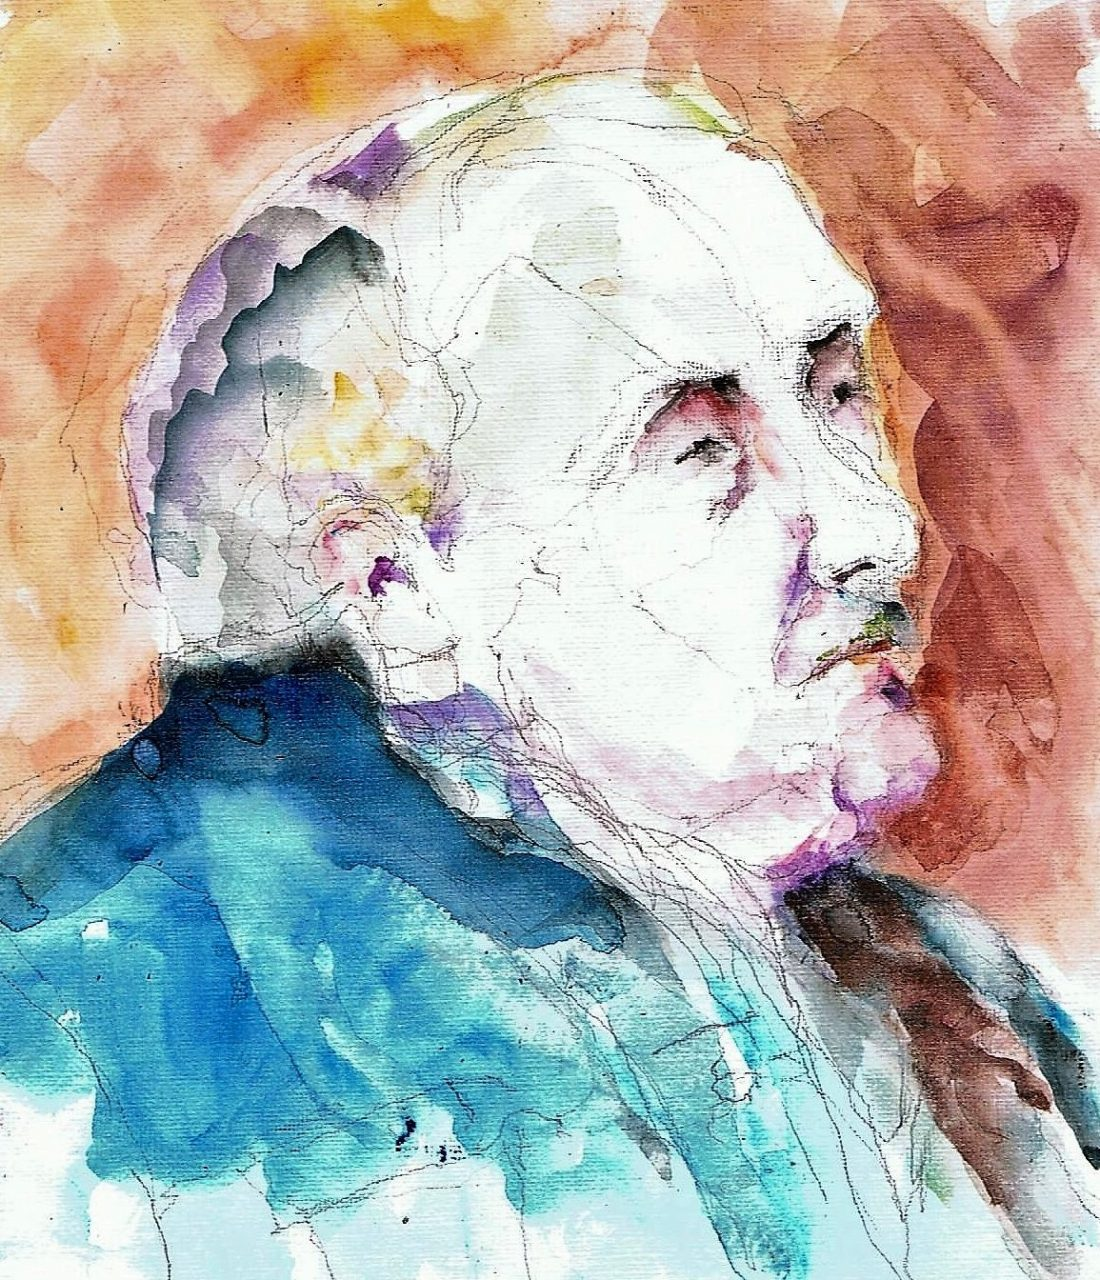 365 dagen een portret 51 Willem, model Aquarel 19c25